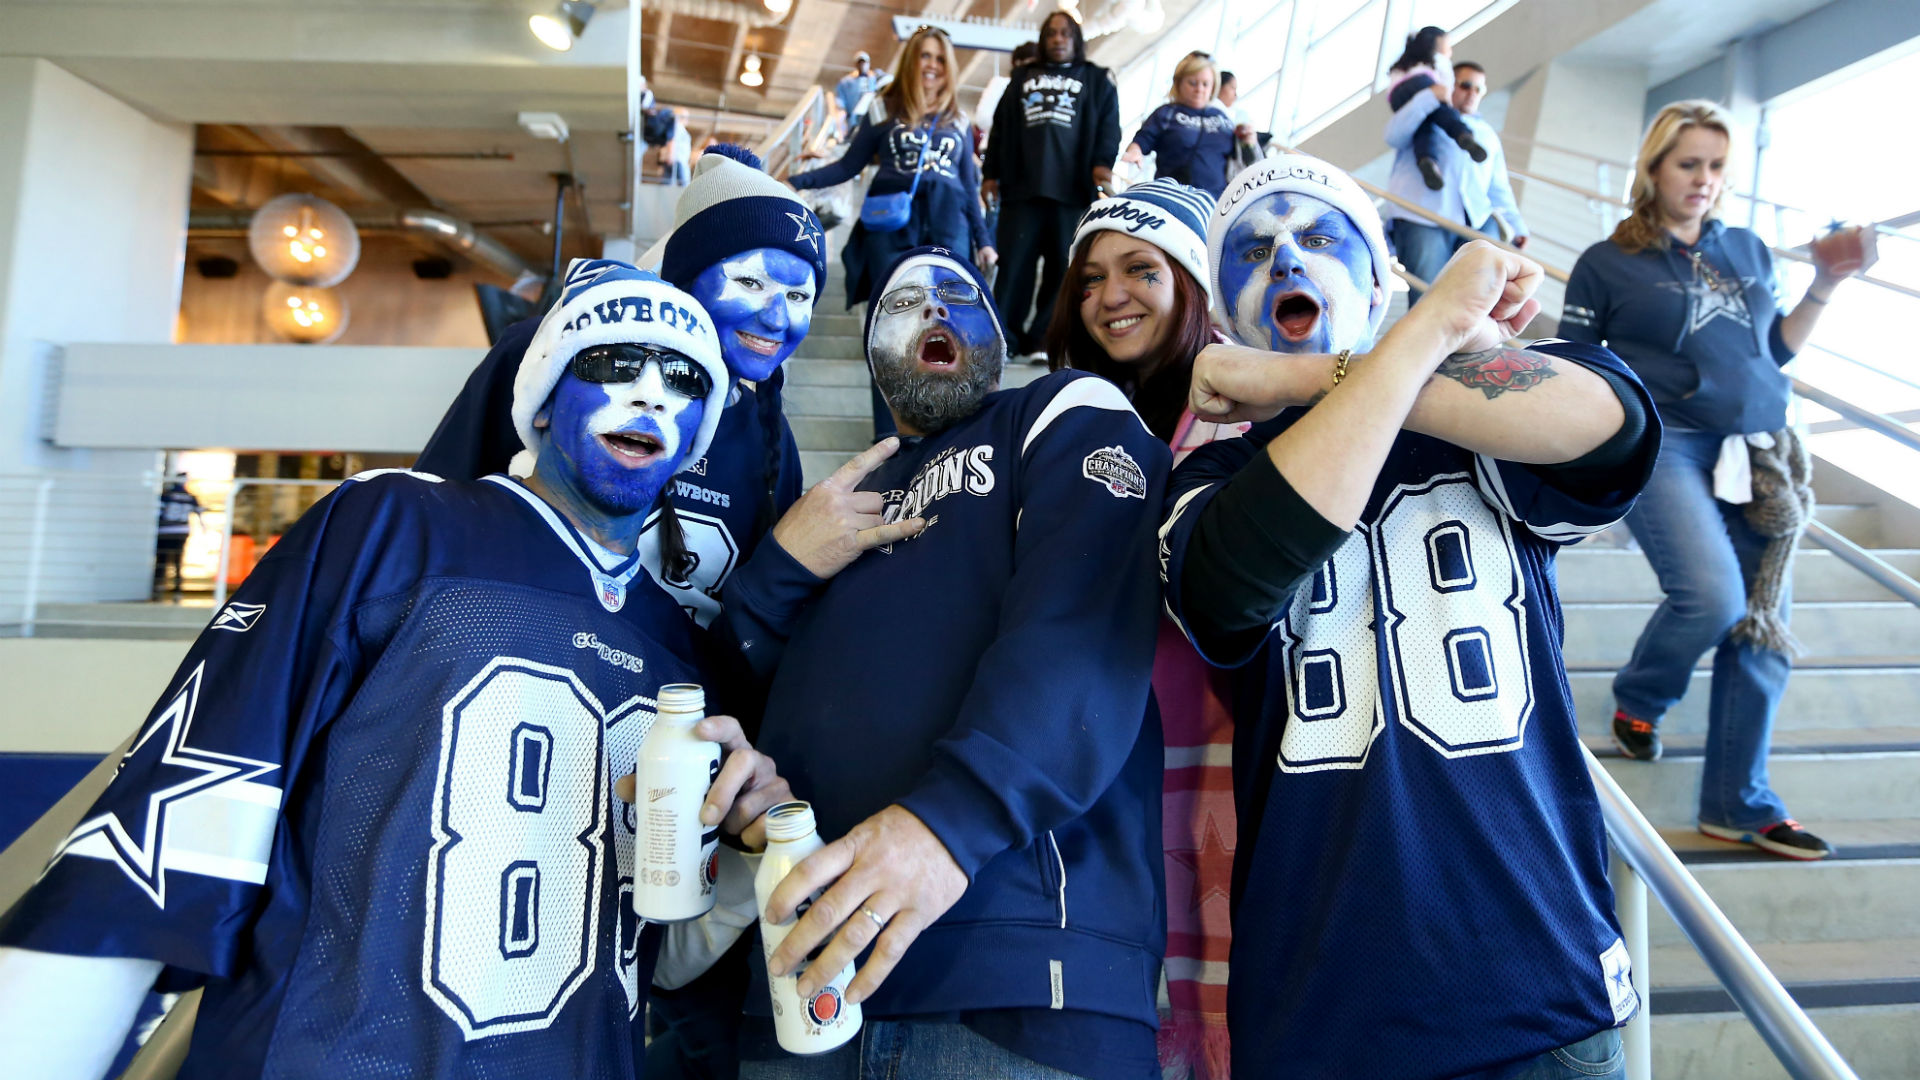 Are Dallas Fans The Most Delusional Fans In The World?